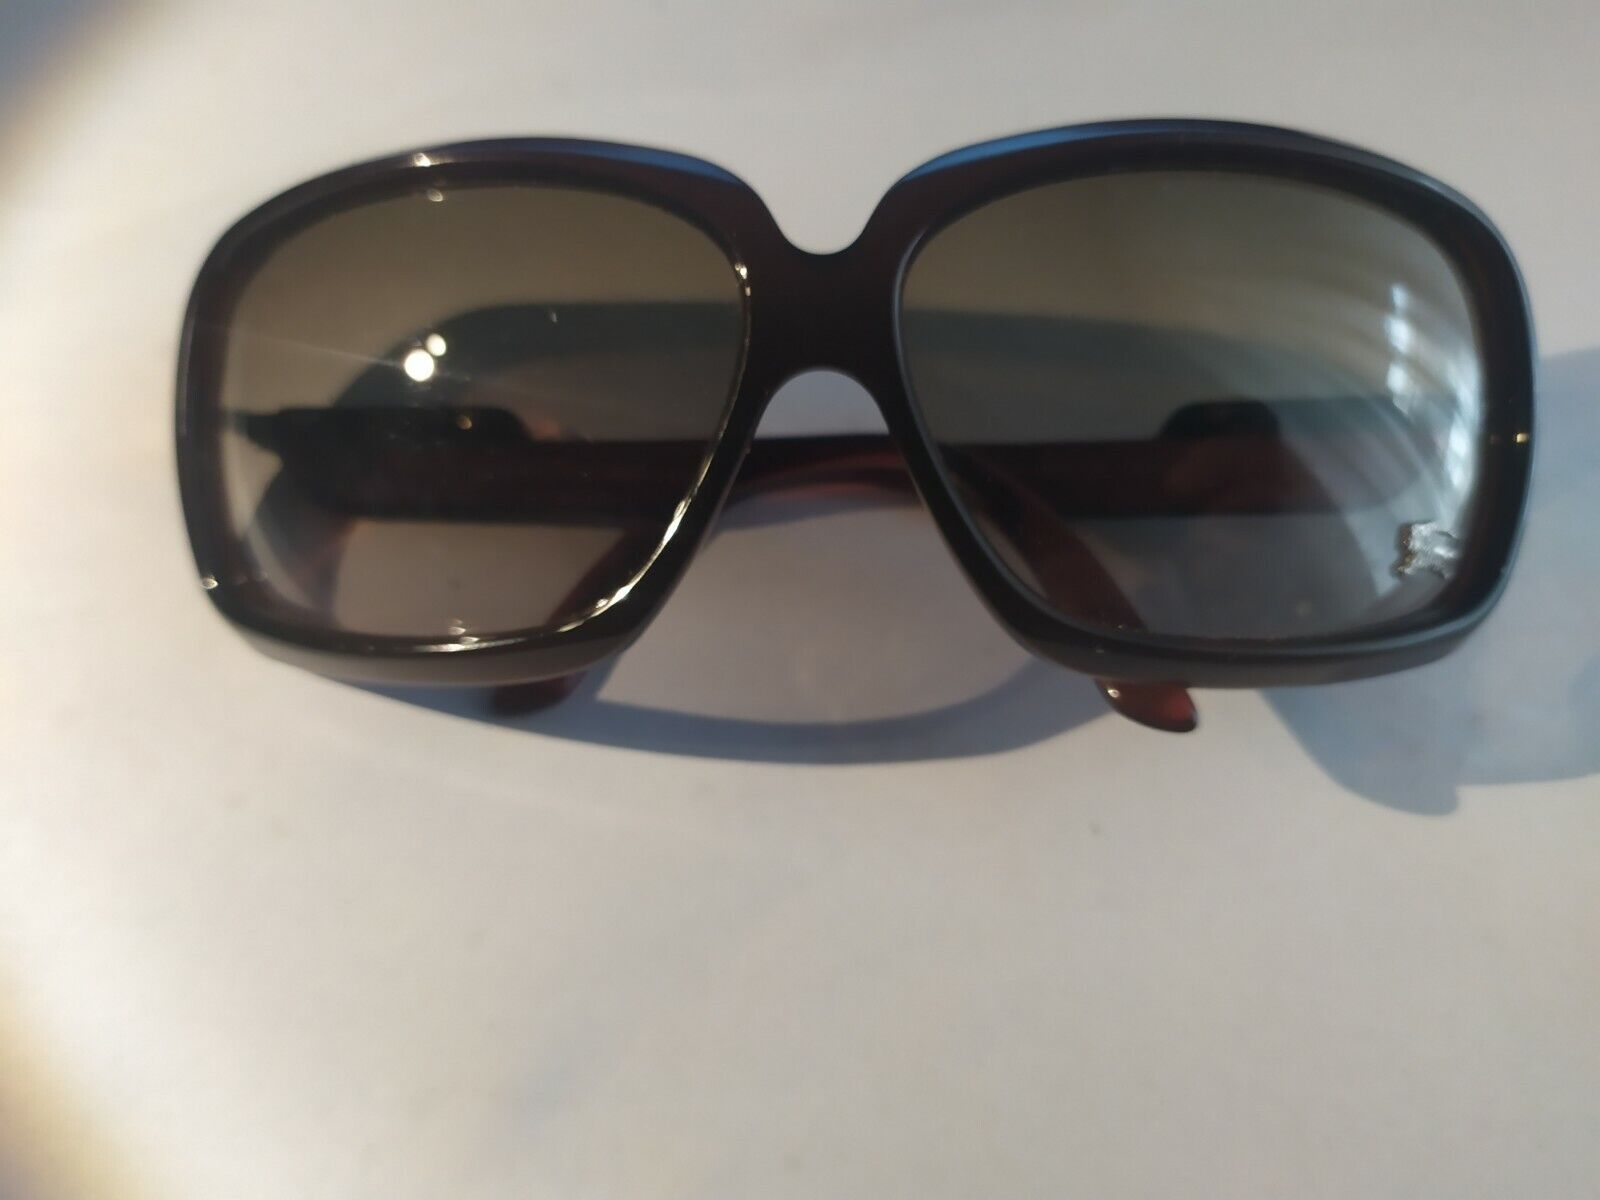 Burberry B4014 3011/13 64-13 120 Sunglasses made in Italy